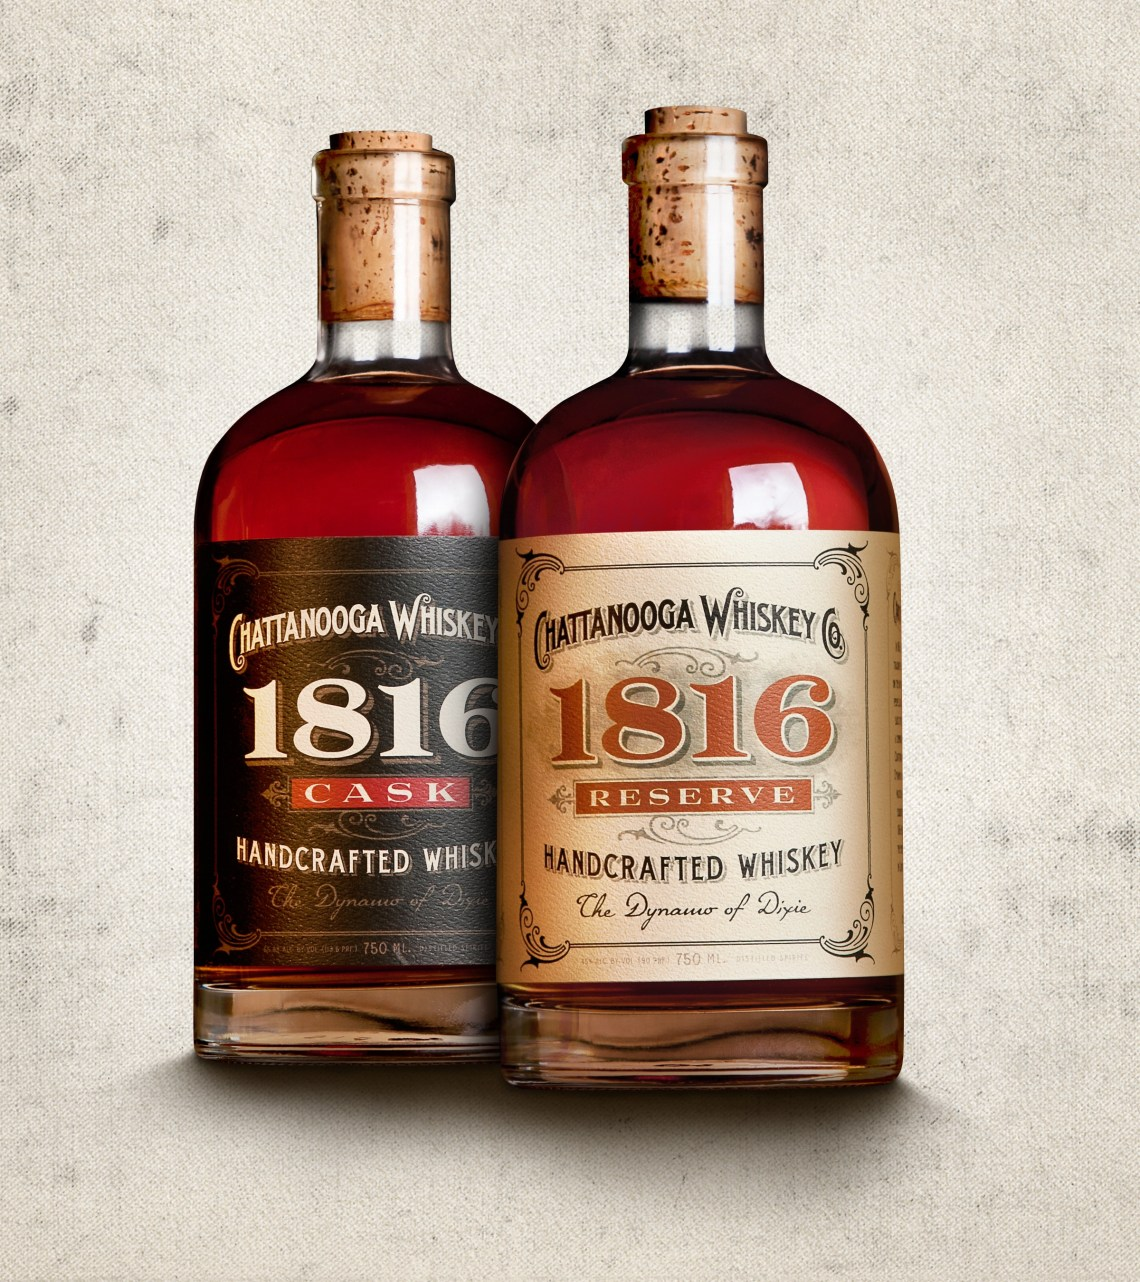 Chattanooga Whiskey Co. 1816 Reserve HandcraftedWhiskey